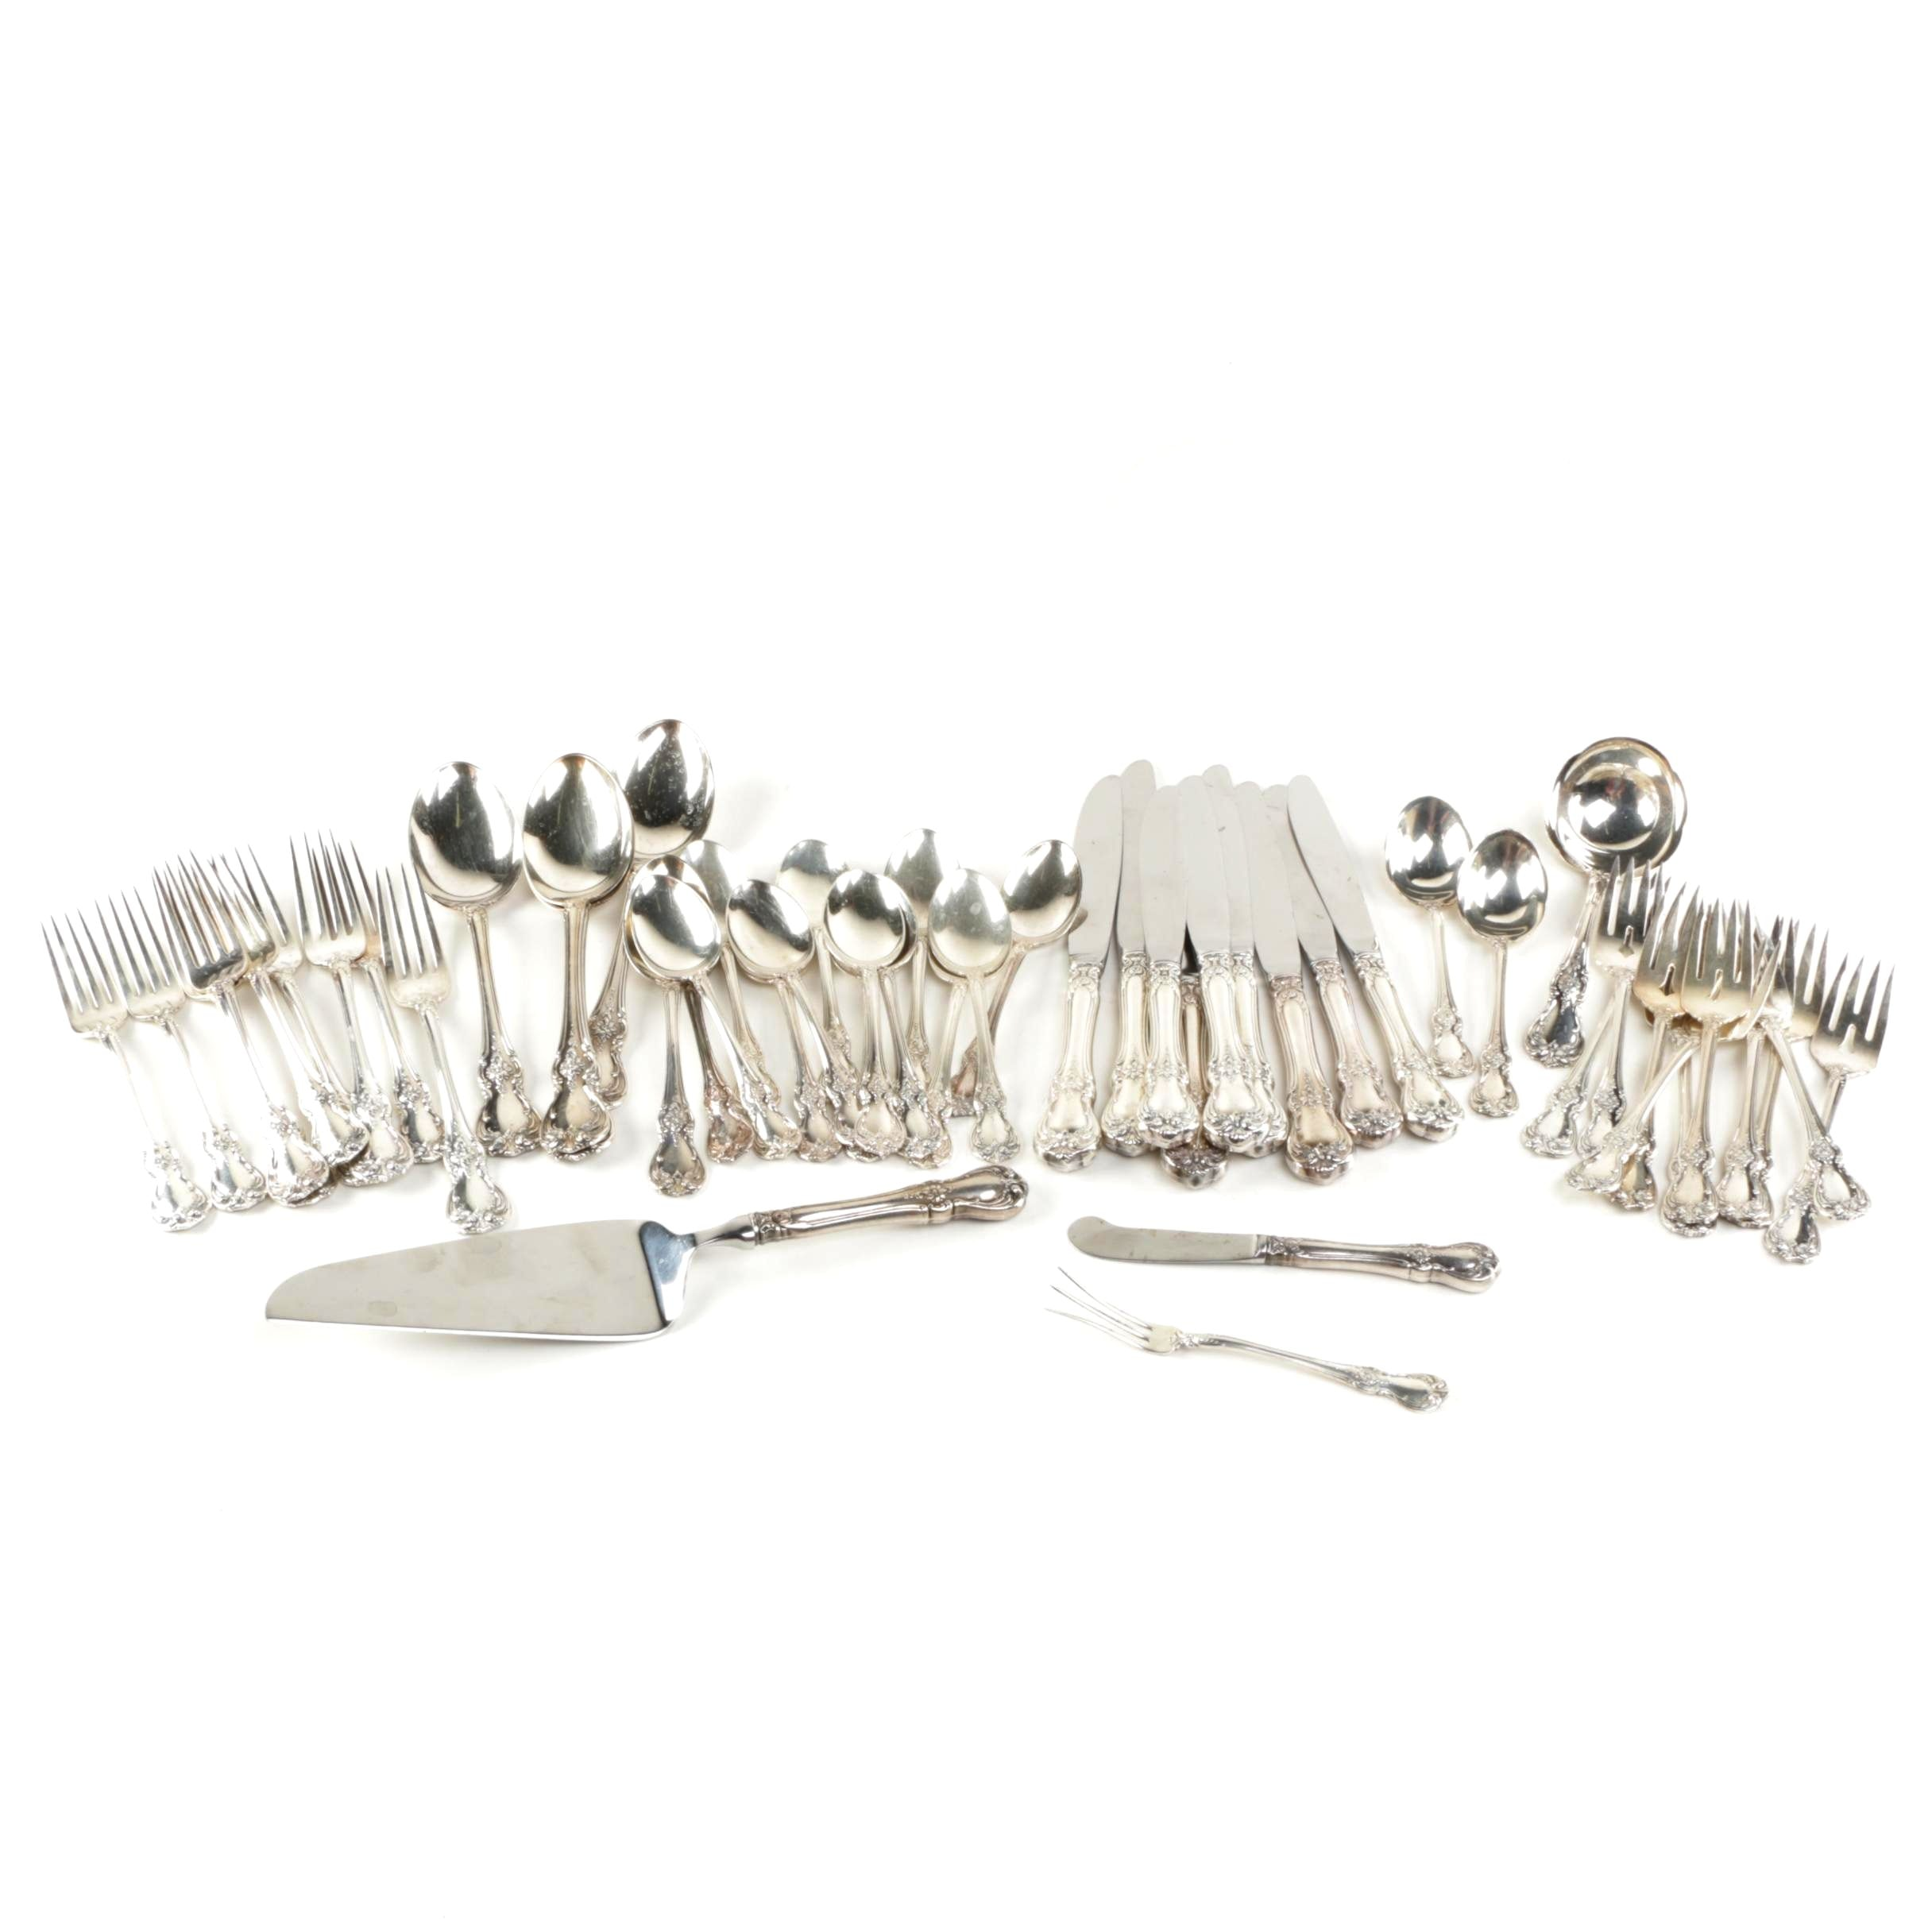 """Towle """"Old Master"""" Sterling Silver Flatware Set"""